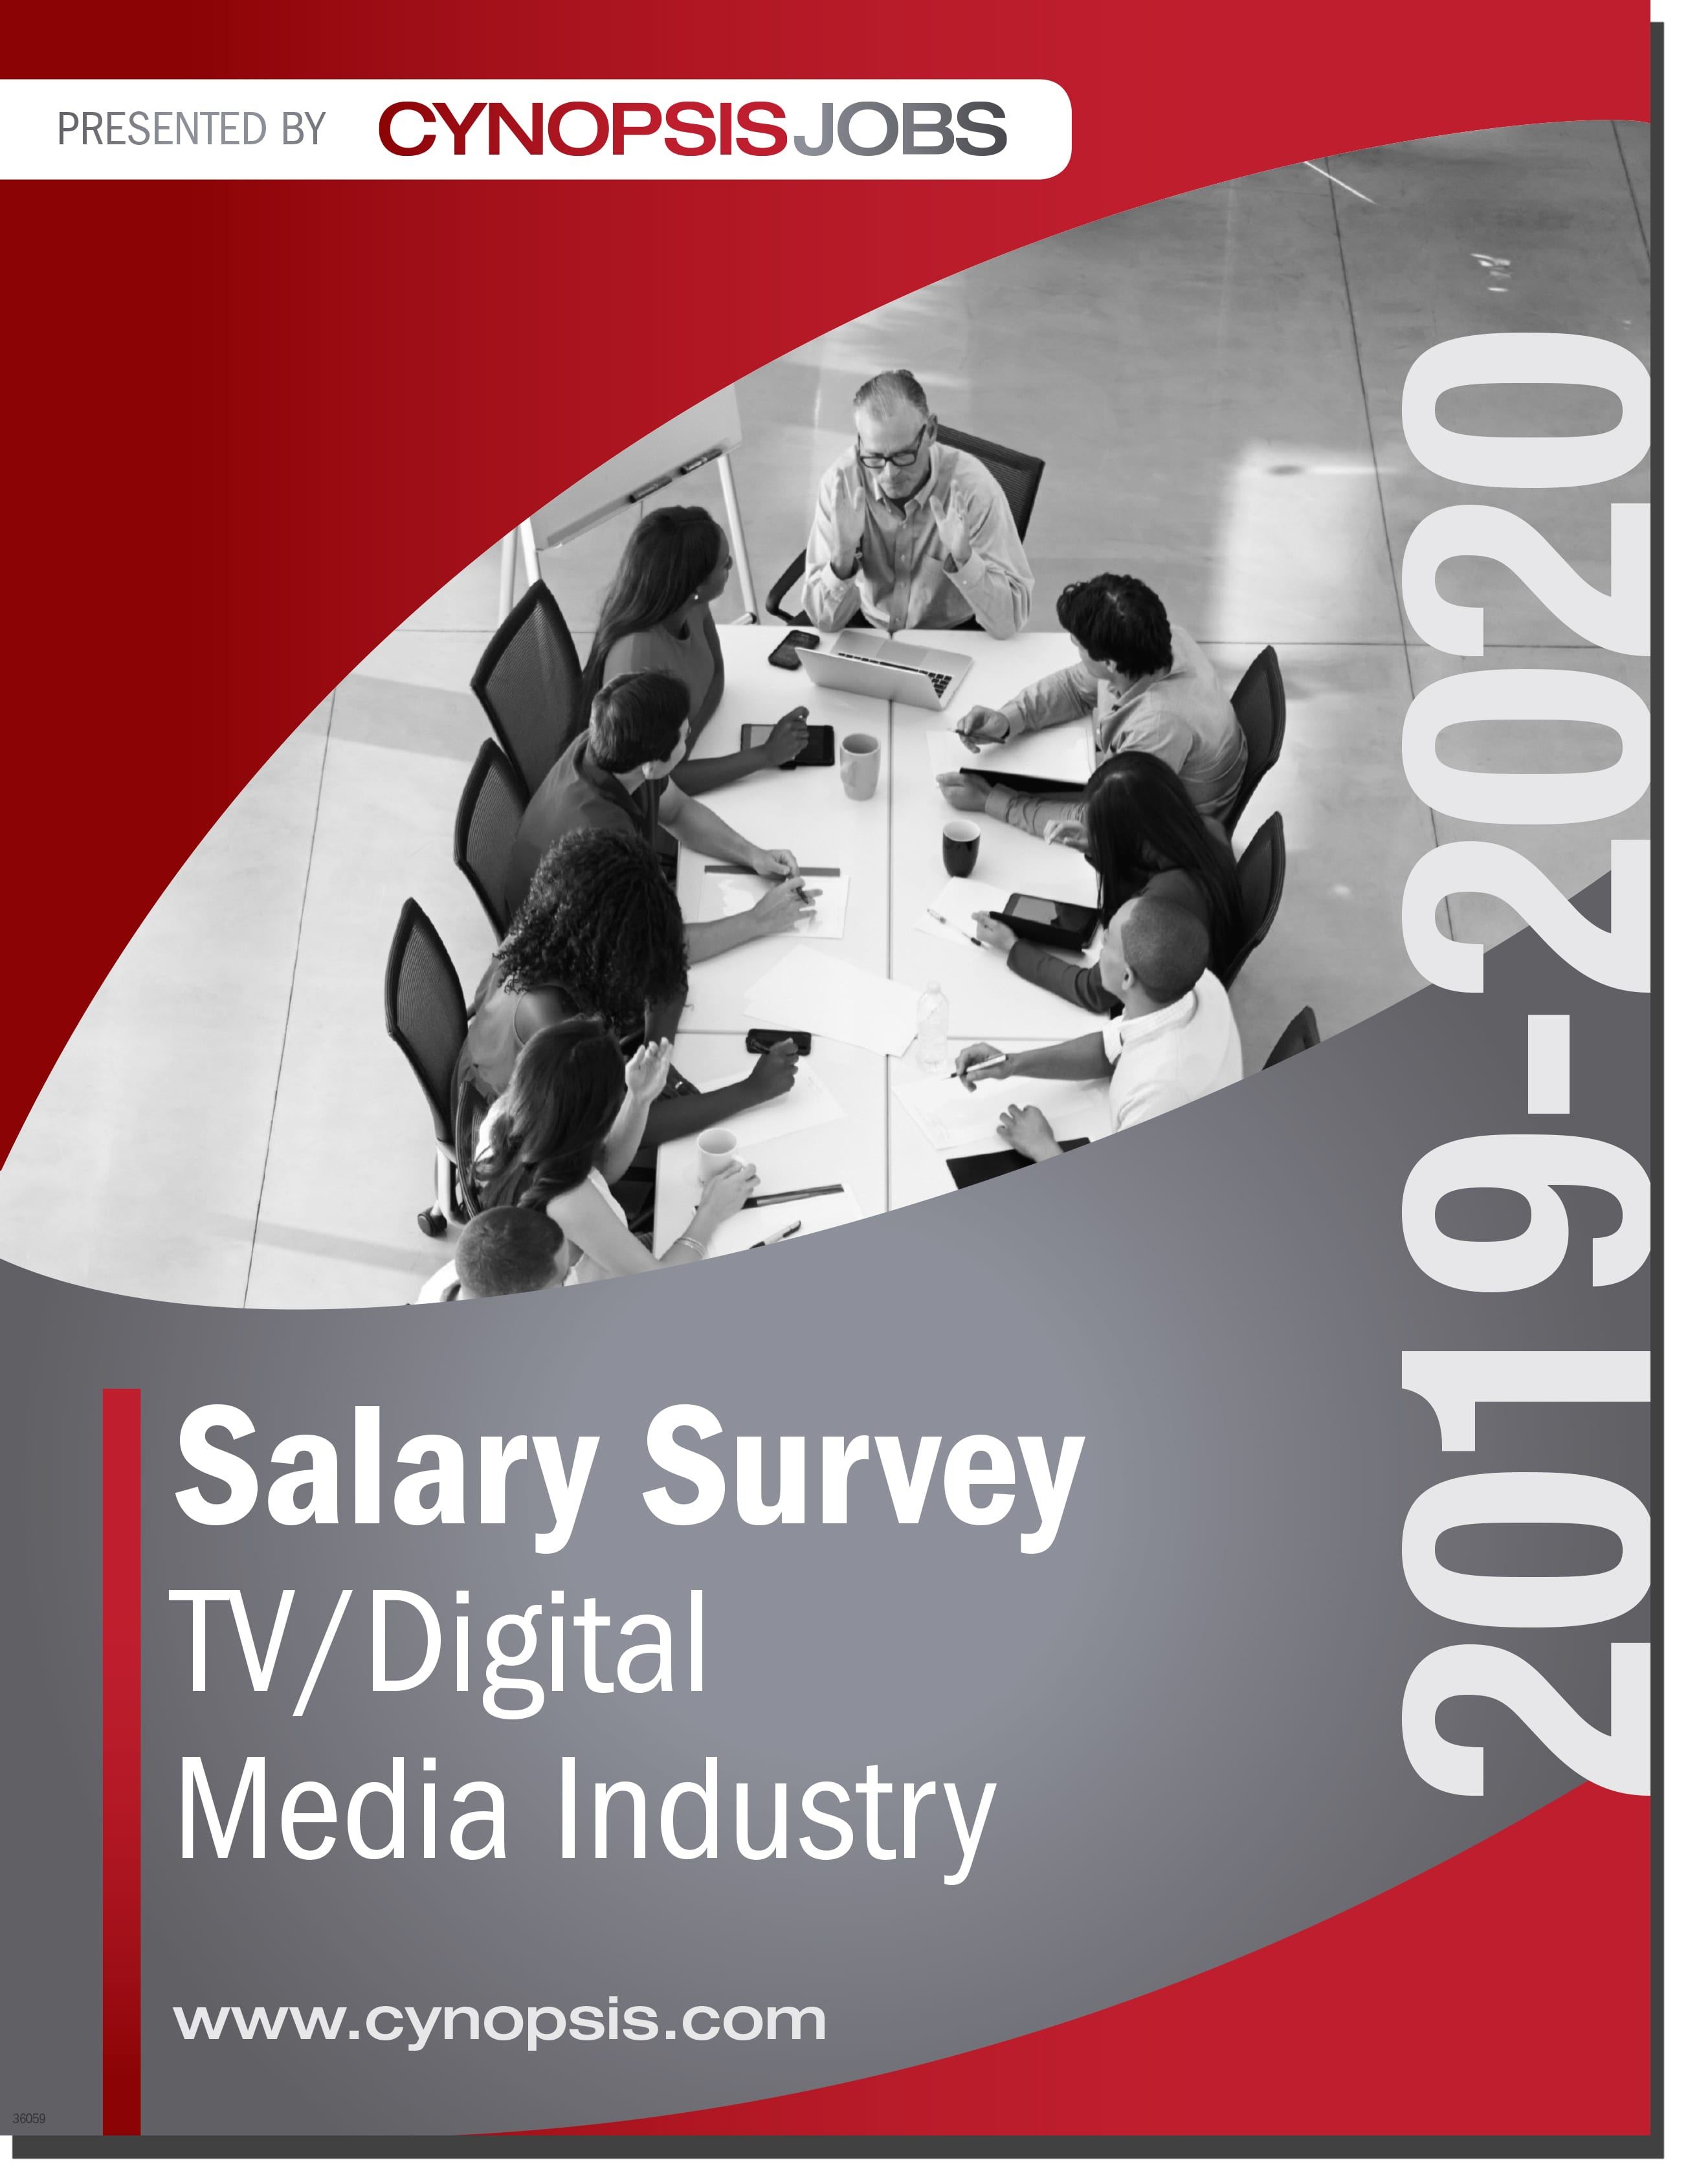 2019-2020 Cynopsis Salary Survey Report